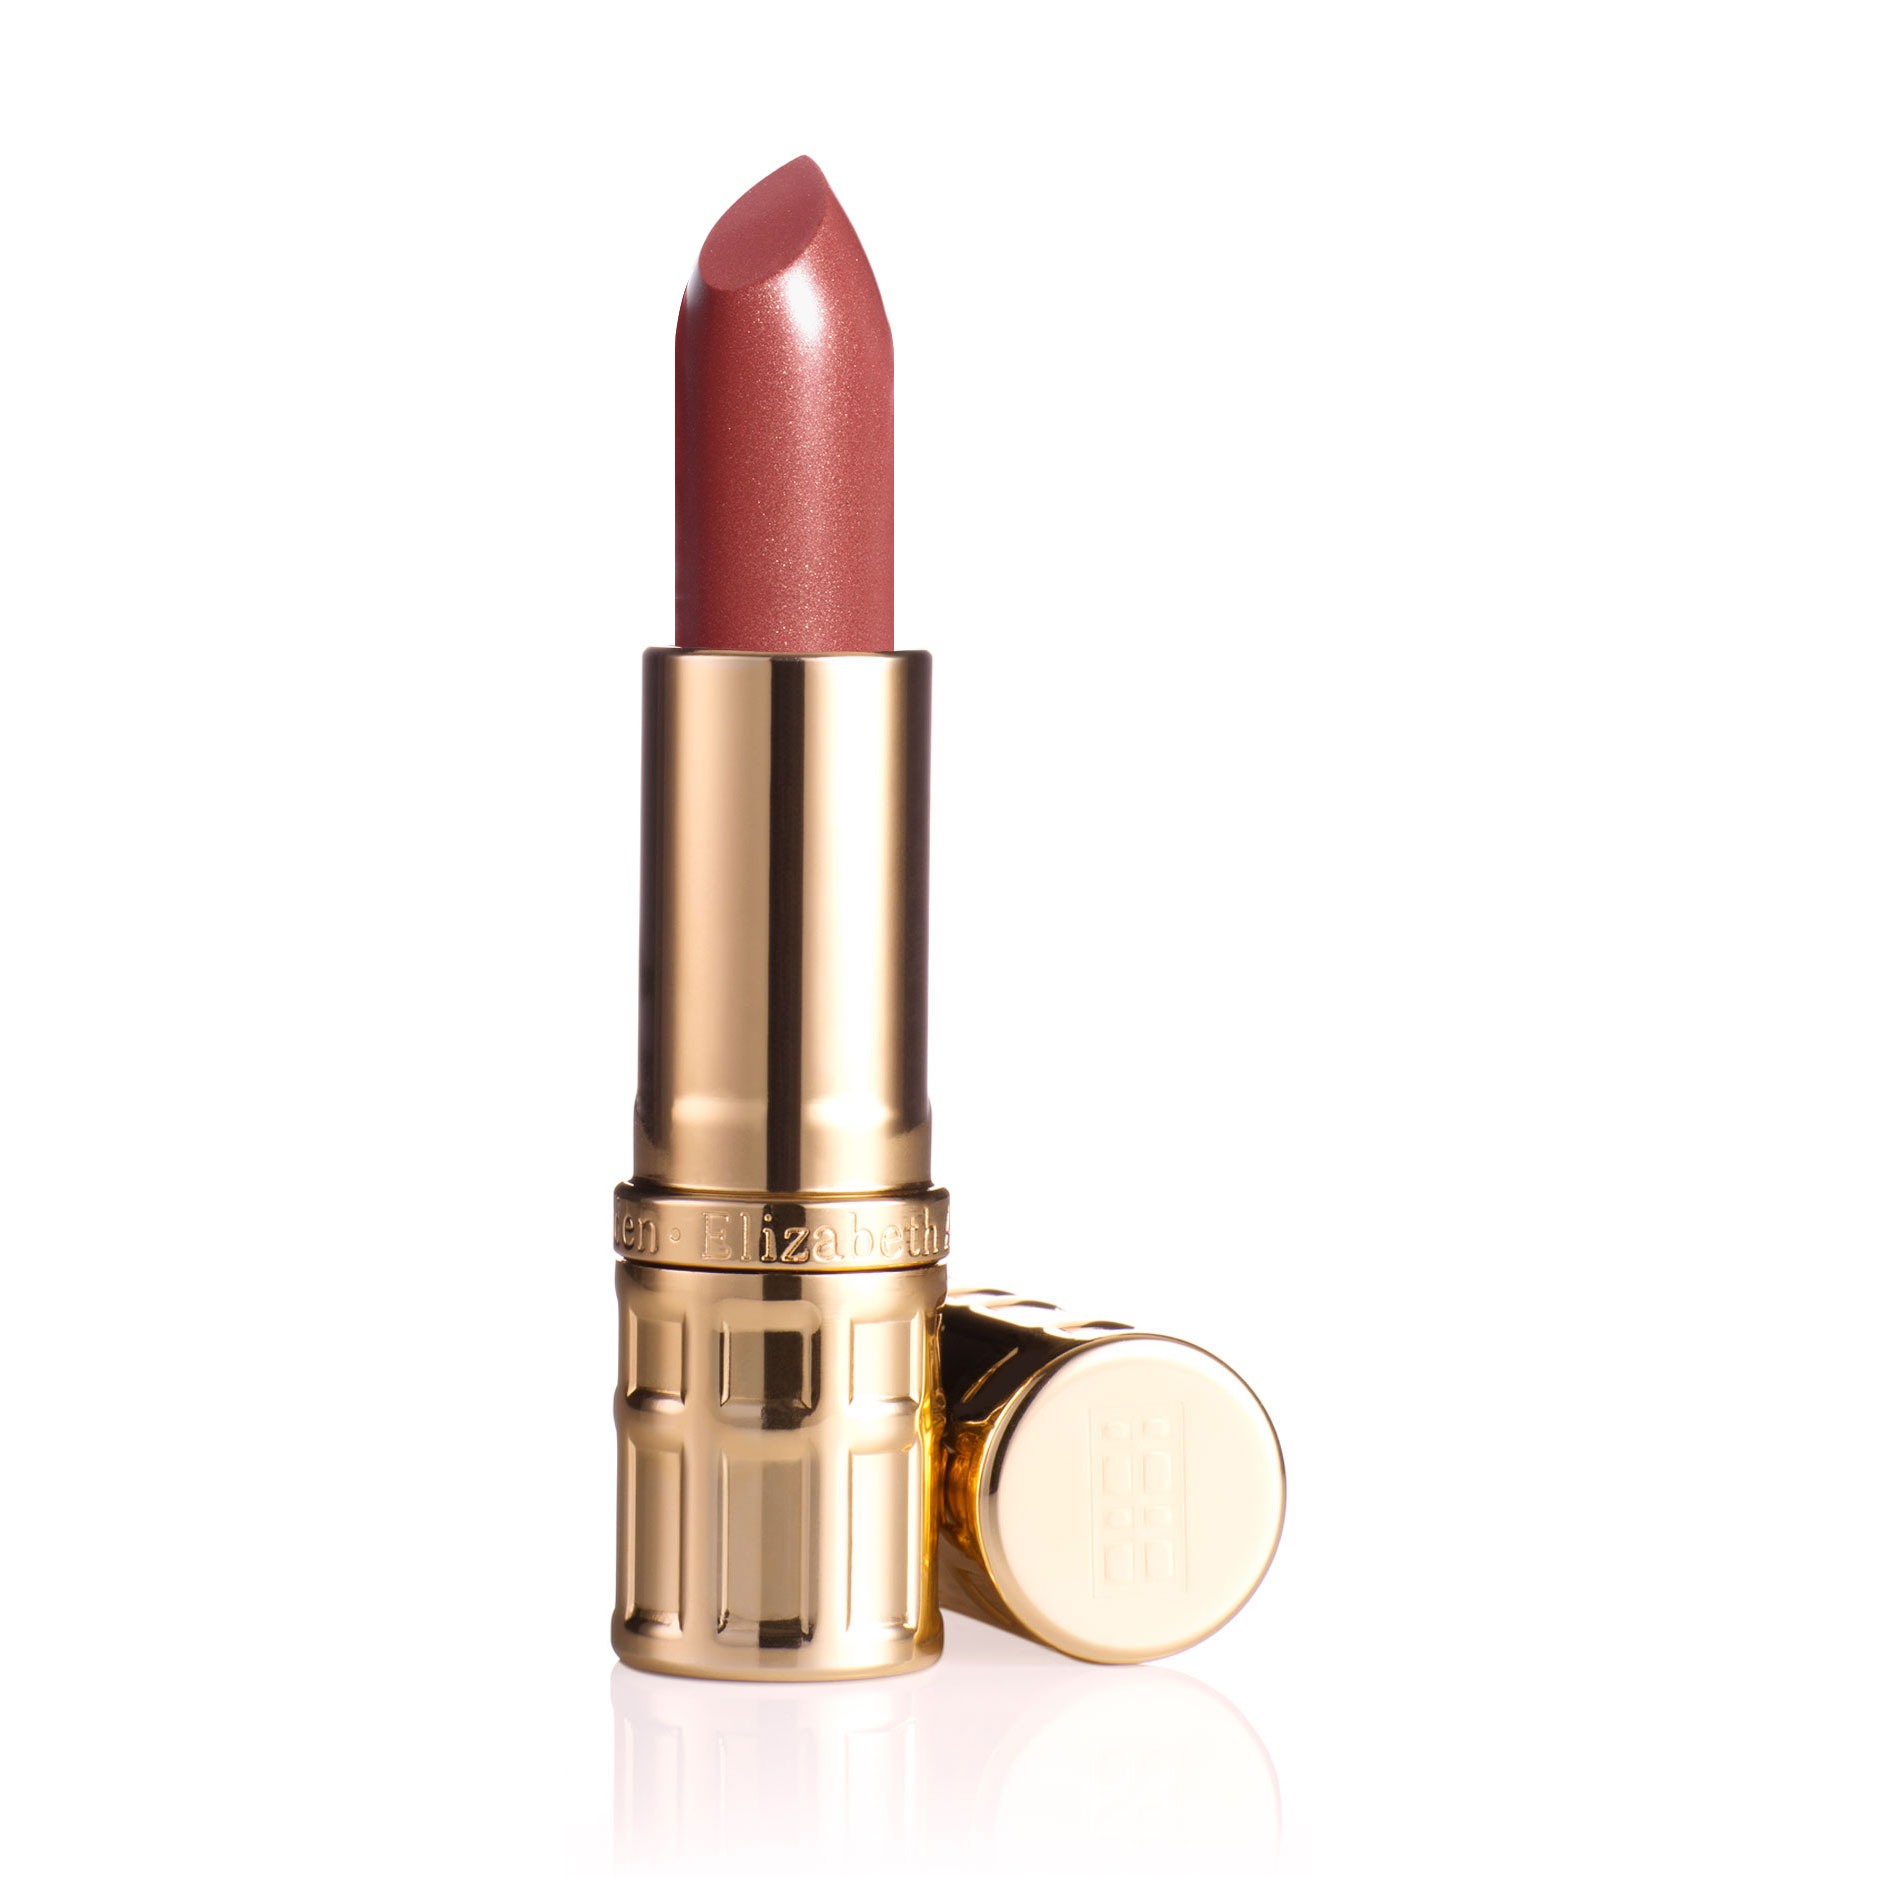 Elizabeth Arden Ceramide Ultra Lipstick in Honeysuckle